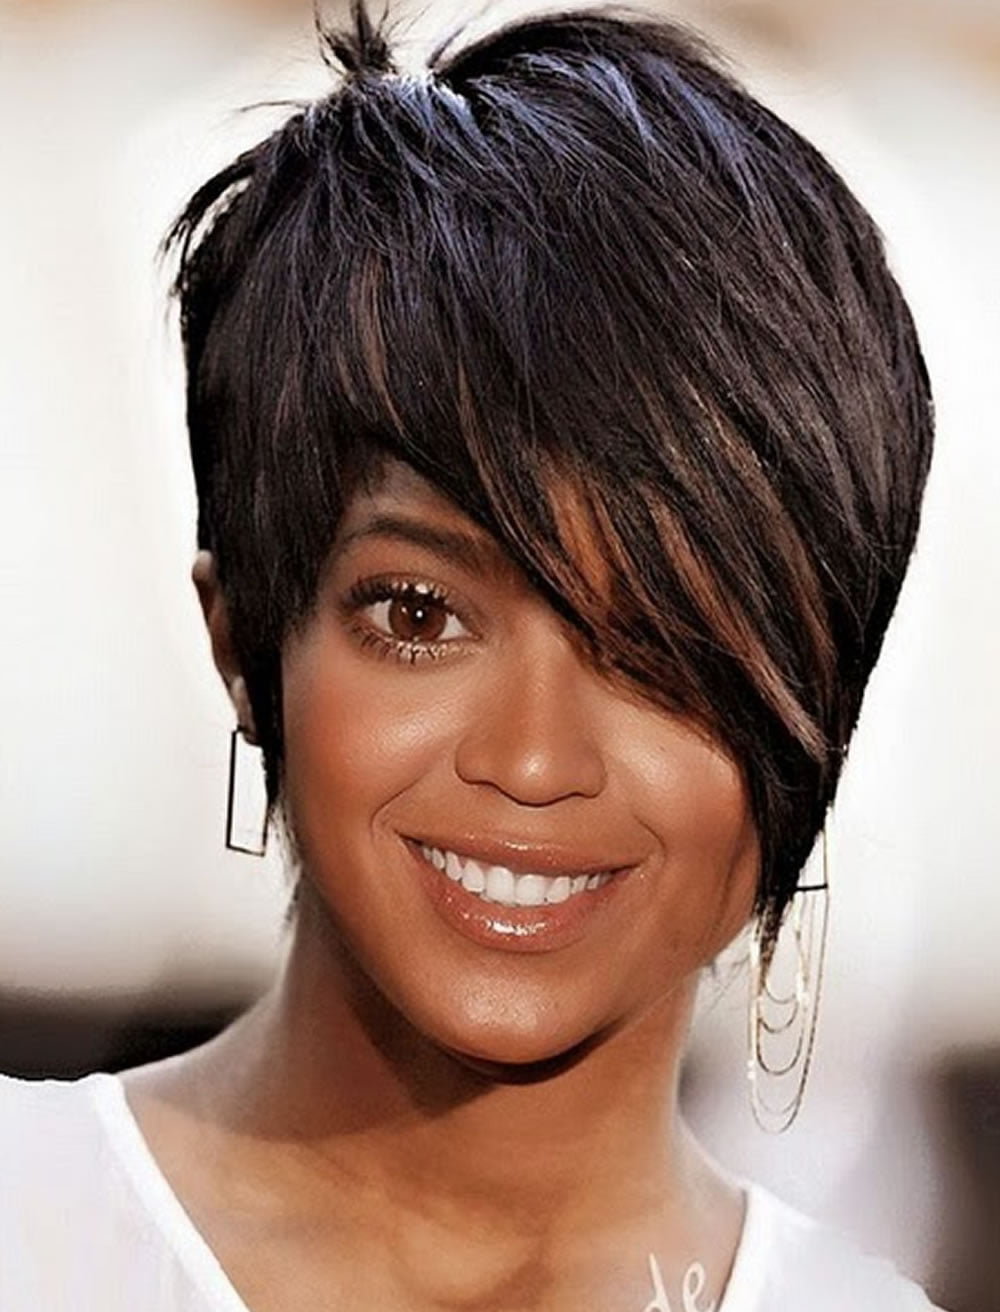 Short Haircuts For Black Women Pixie Short Black Hair - Short hairstyle bob cut